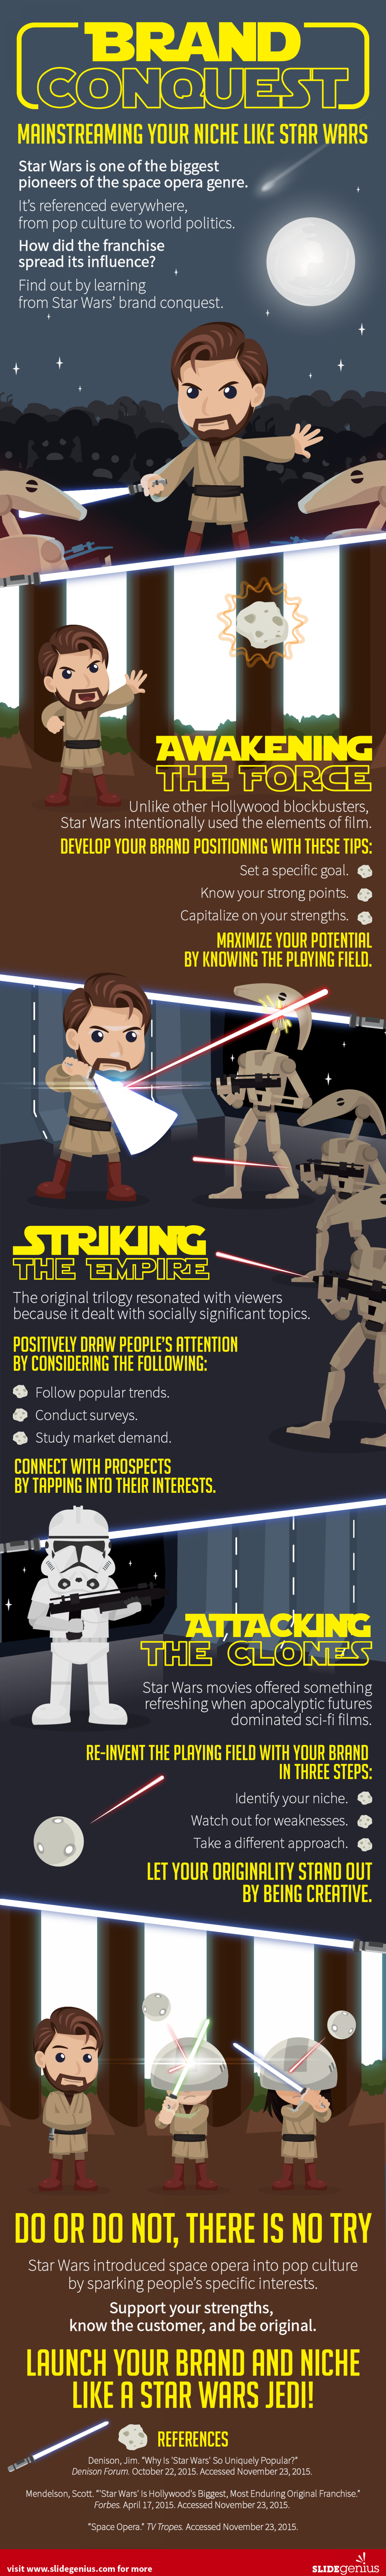 Brand Conquest: Mainstreaming Your Niche Like Star Wars Infographic